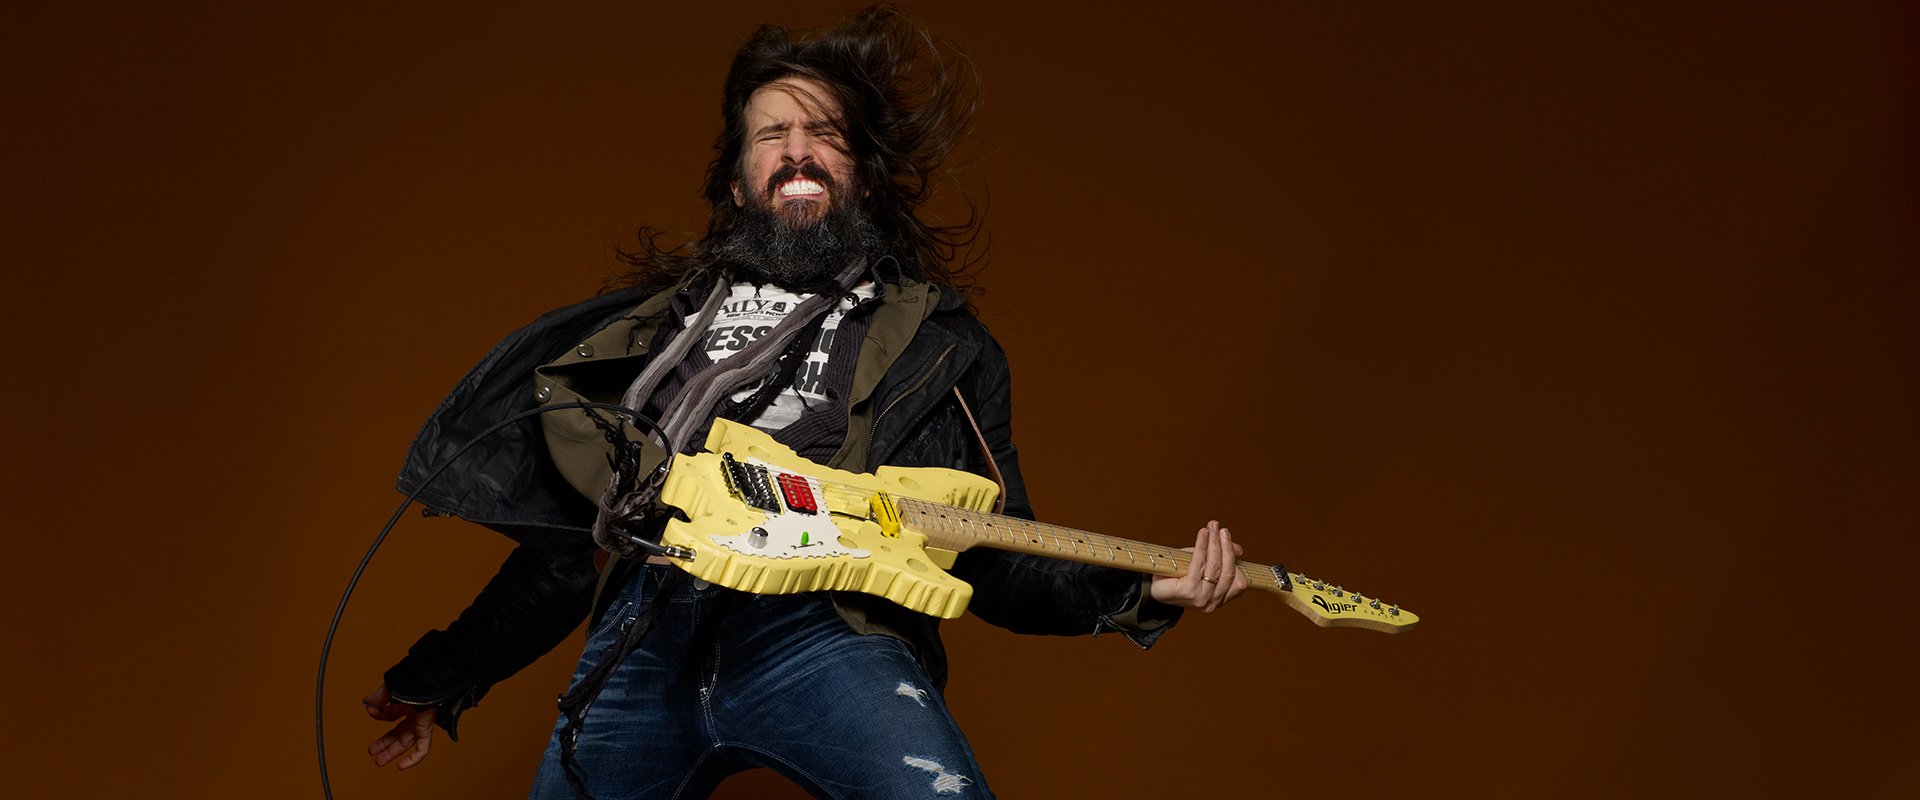 Ron Thal for DiMarzio